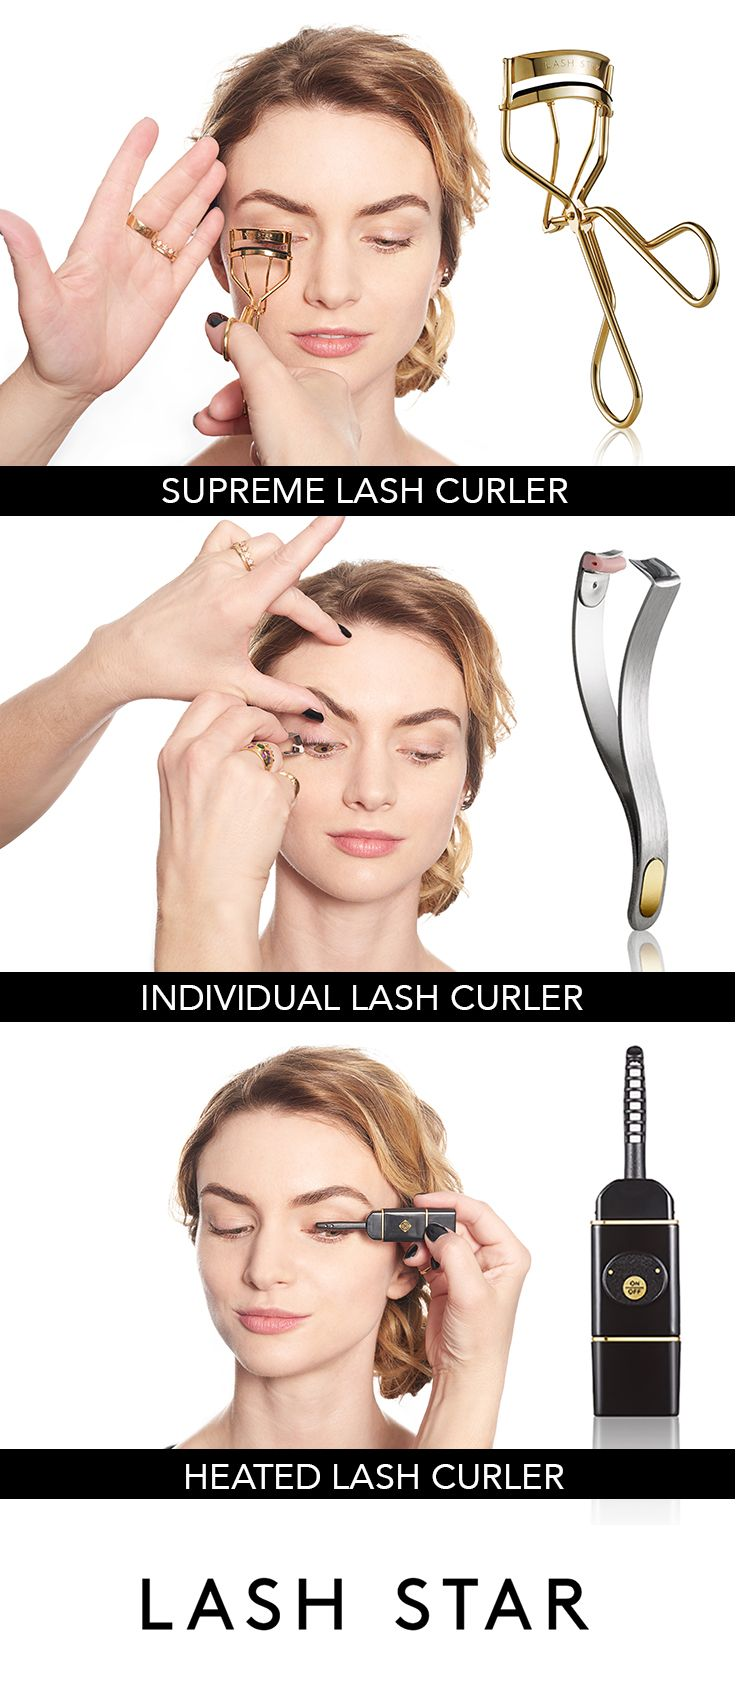 heated eyelash curler results. discover our collection of gold eyelash curlers, individual lash and heated curlers false applicator tools makeup brushes. curler results